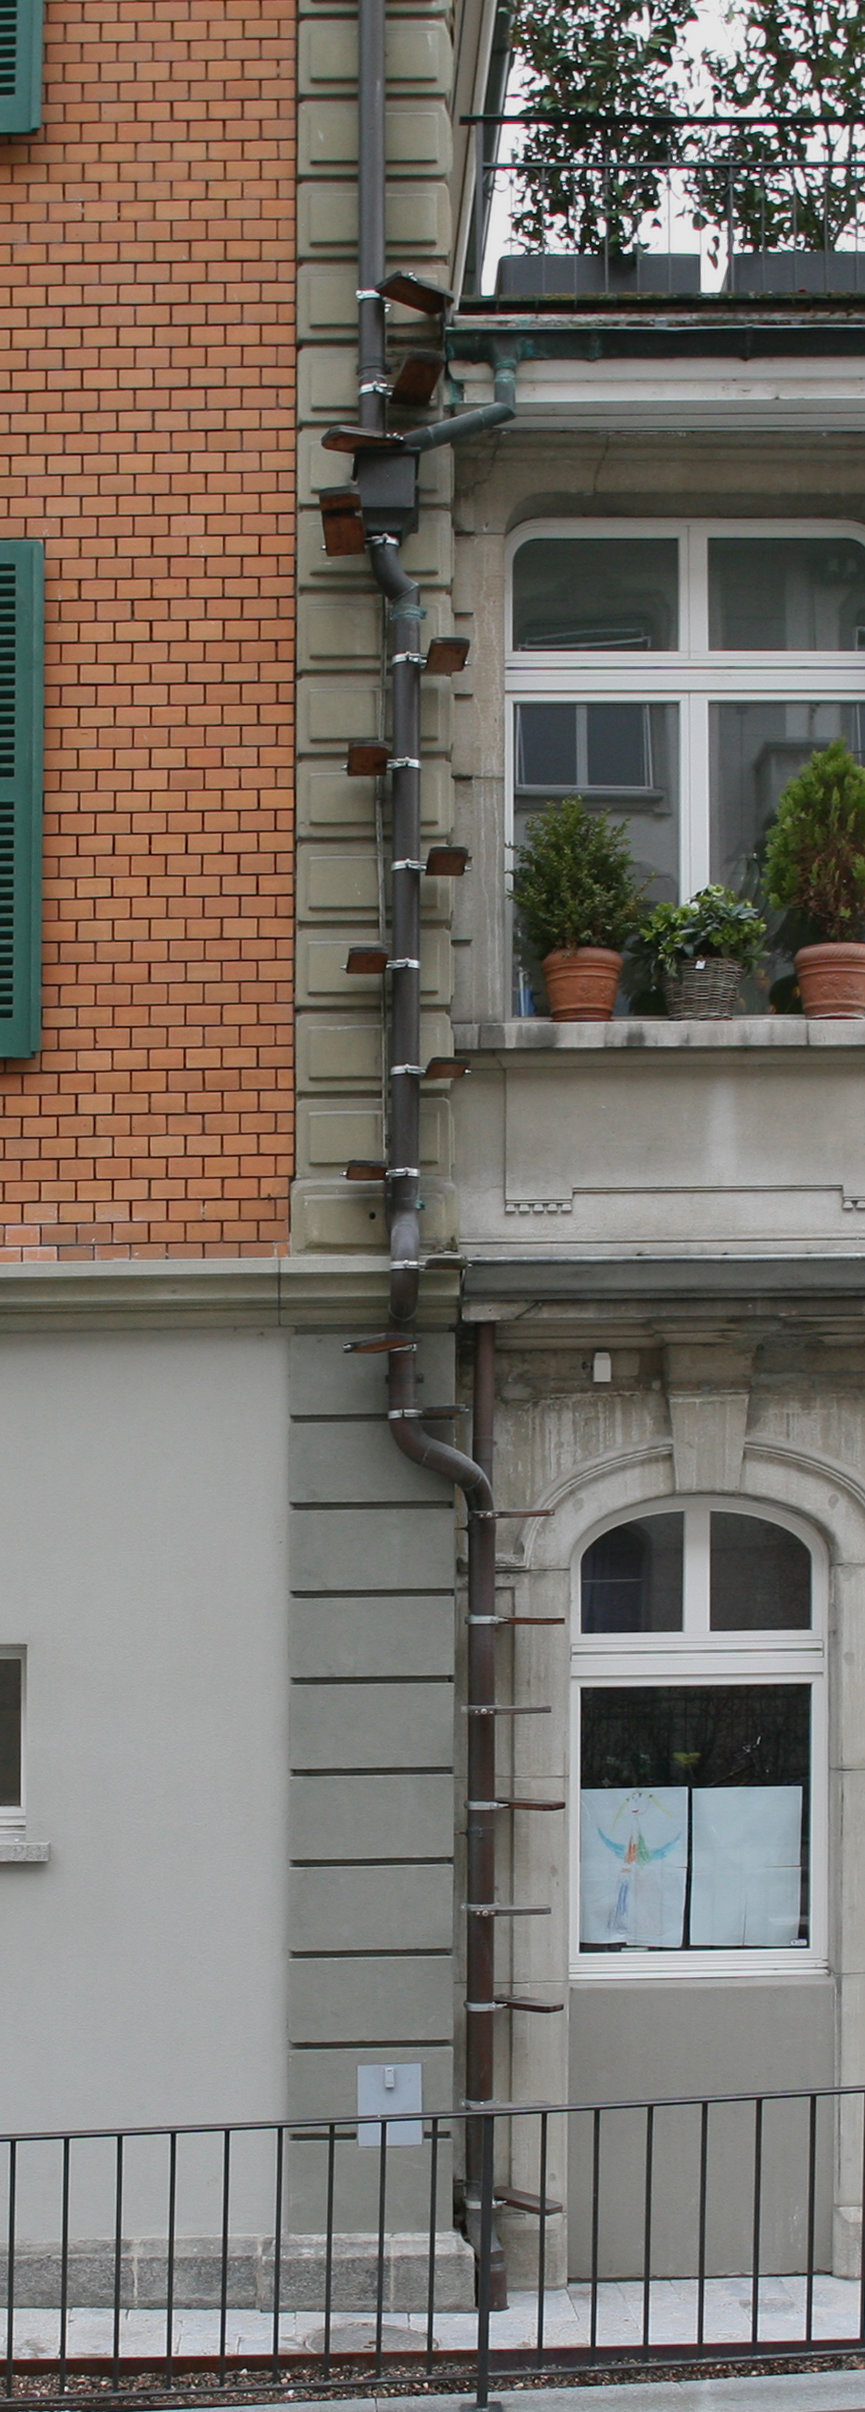 Picture of: Pet Doors For People Who Live On Upper Floors This City Allows You To Install Diy Cat Ladders Core77